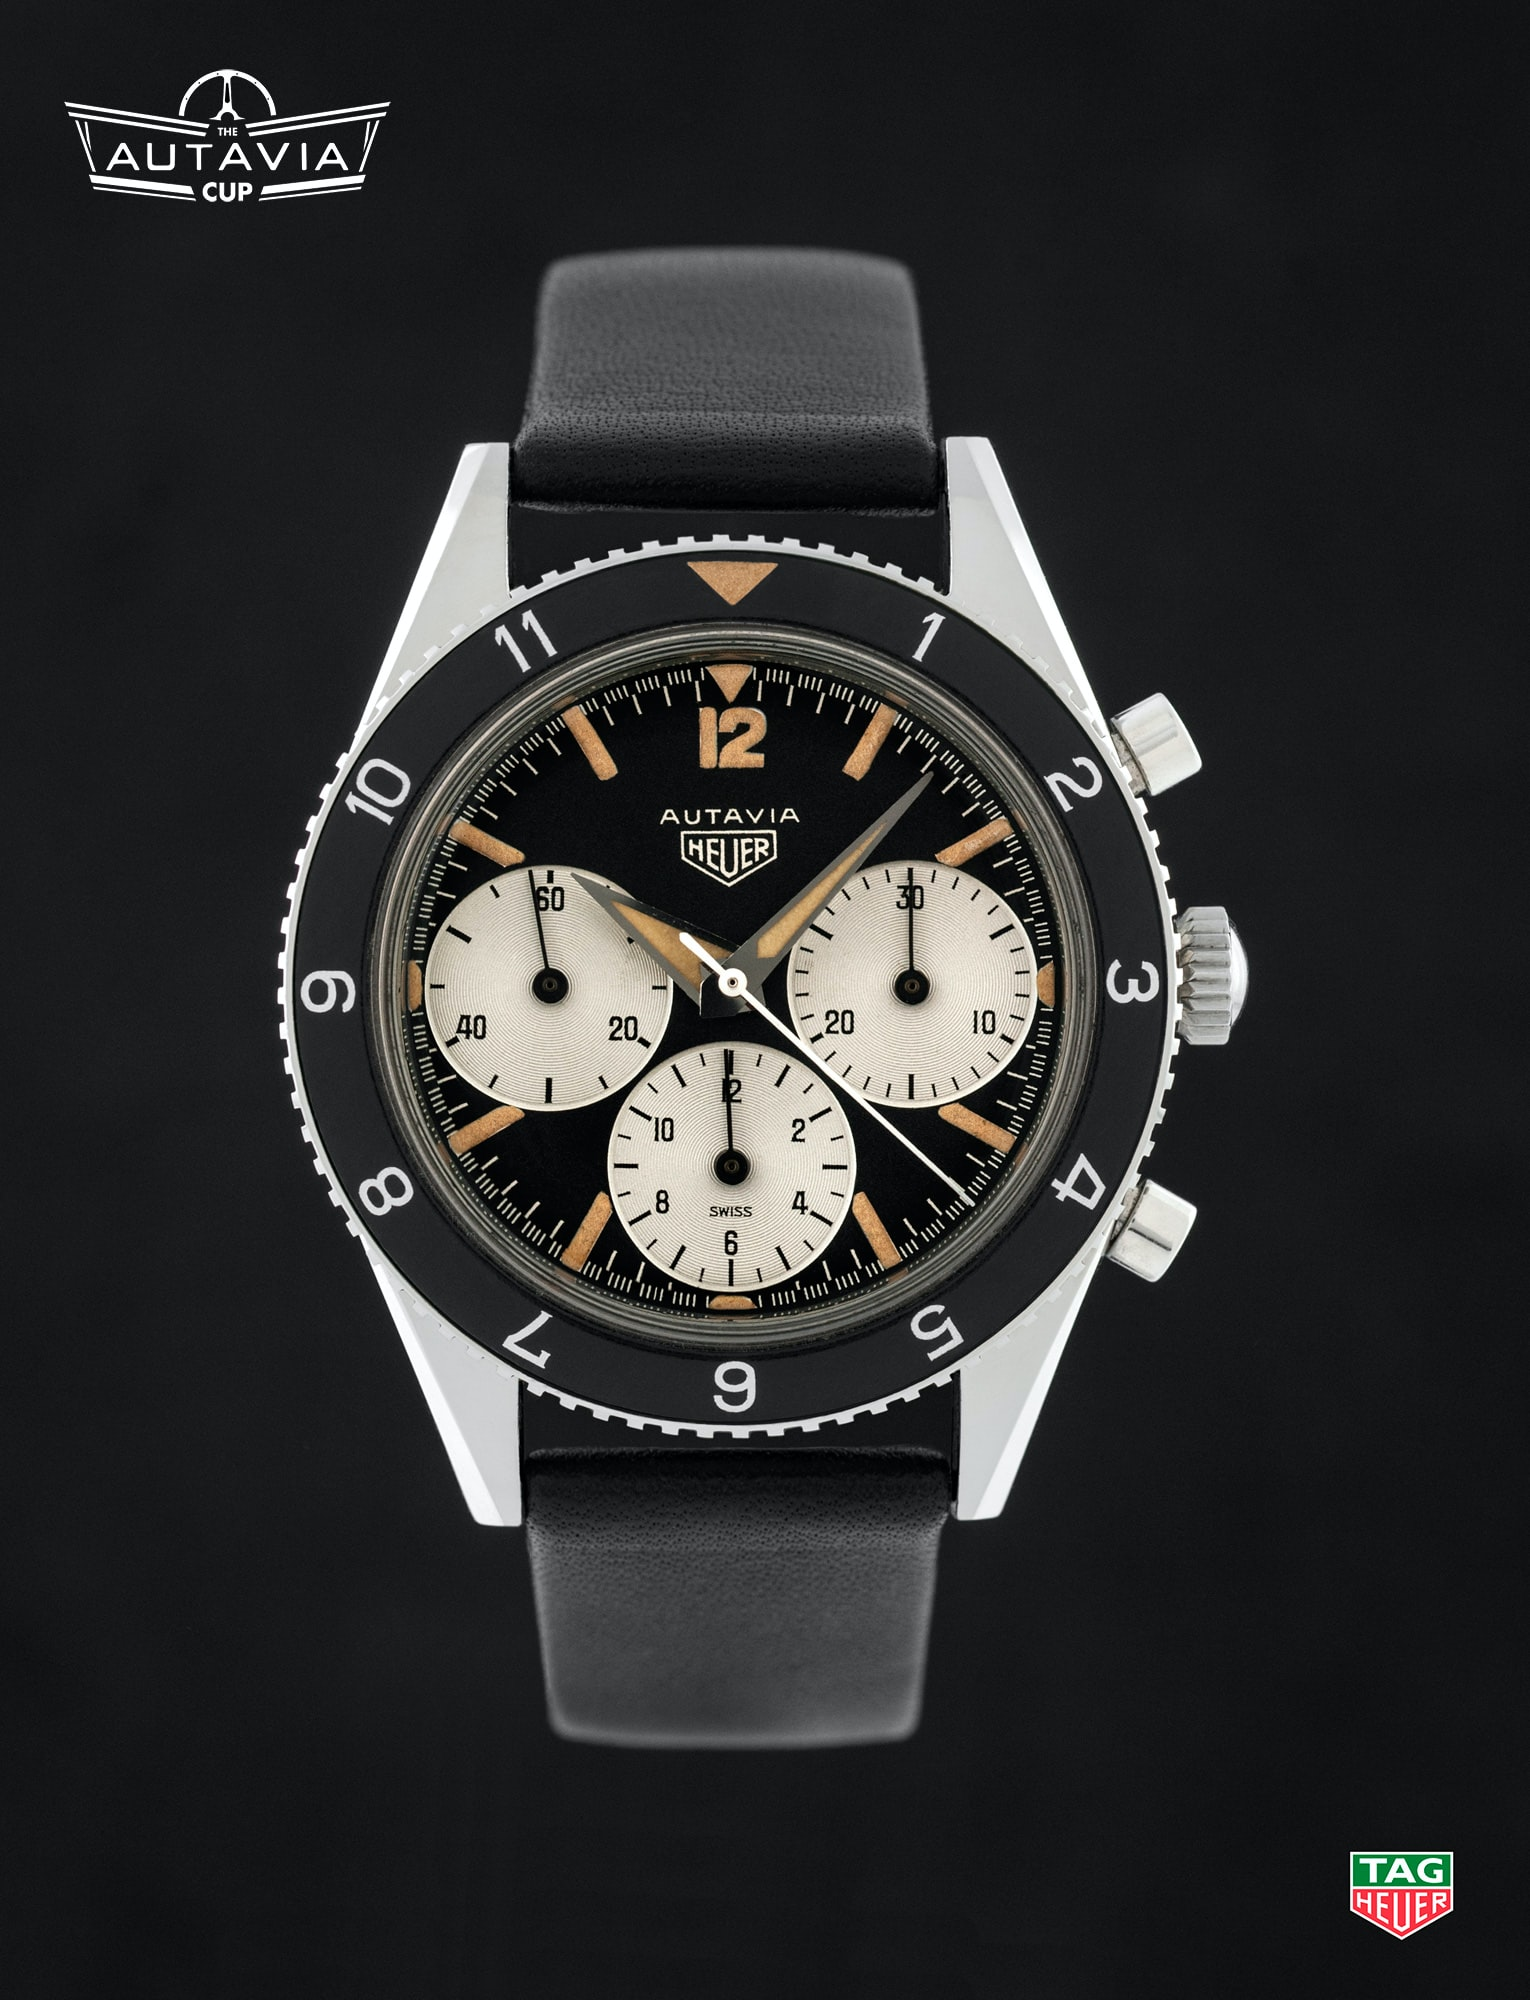 Heuer Autavia Ref. 2446 Mk1 Steel  TAG Heuer Will Relaunch The Autavia In 2017 – And Fans Get To Choose The Model TAG Heuer Will Relaunch The Autavia In 2017 – And Fans Get To Choose The Model 05 2446 Mk1 Steel